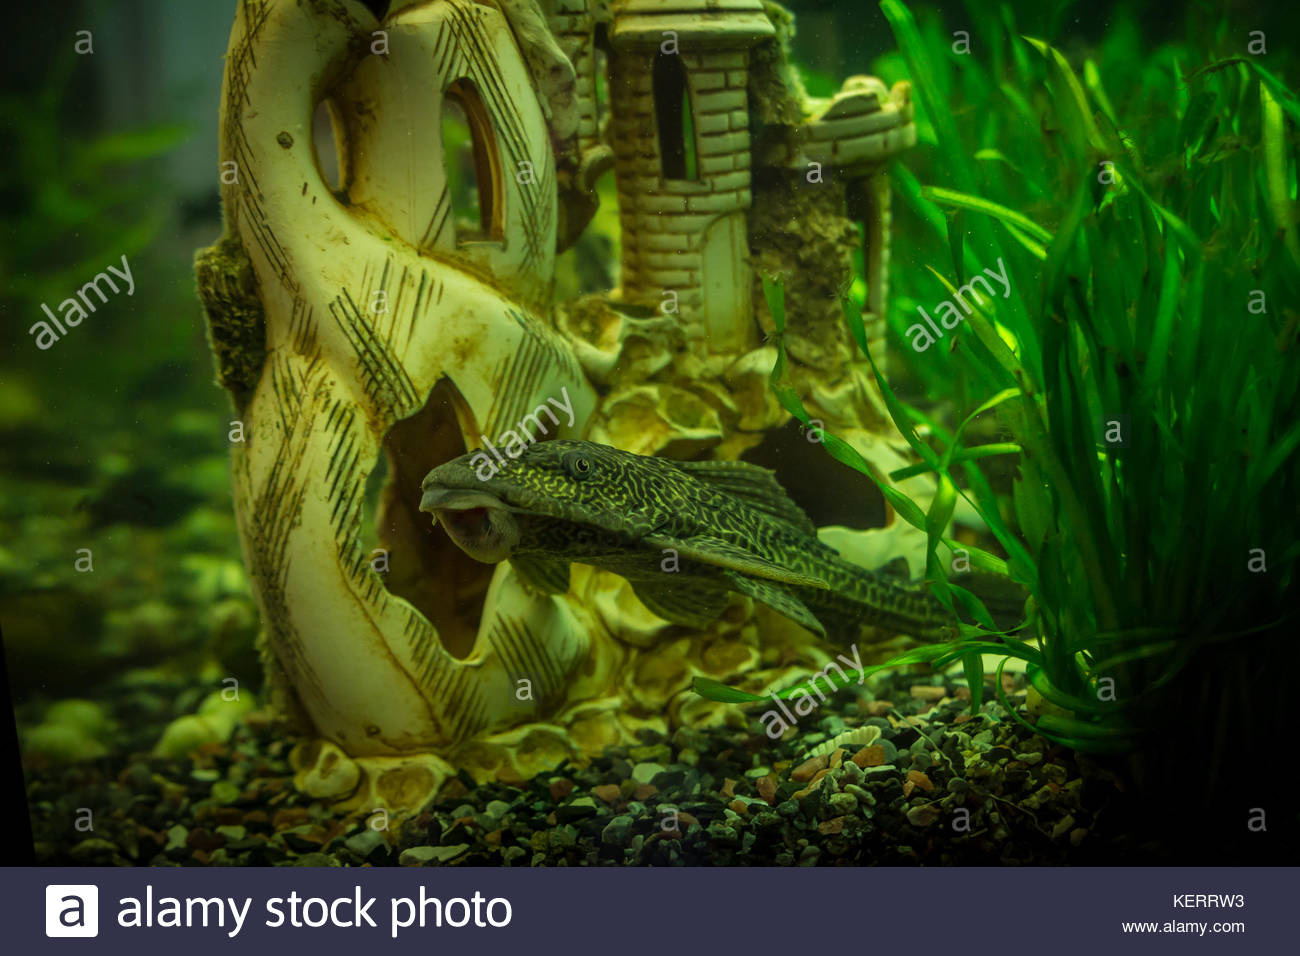 Home aquarium with fish and castle and water plants - Stock Image